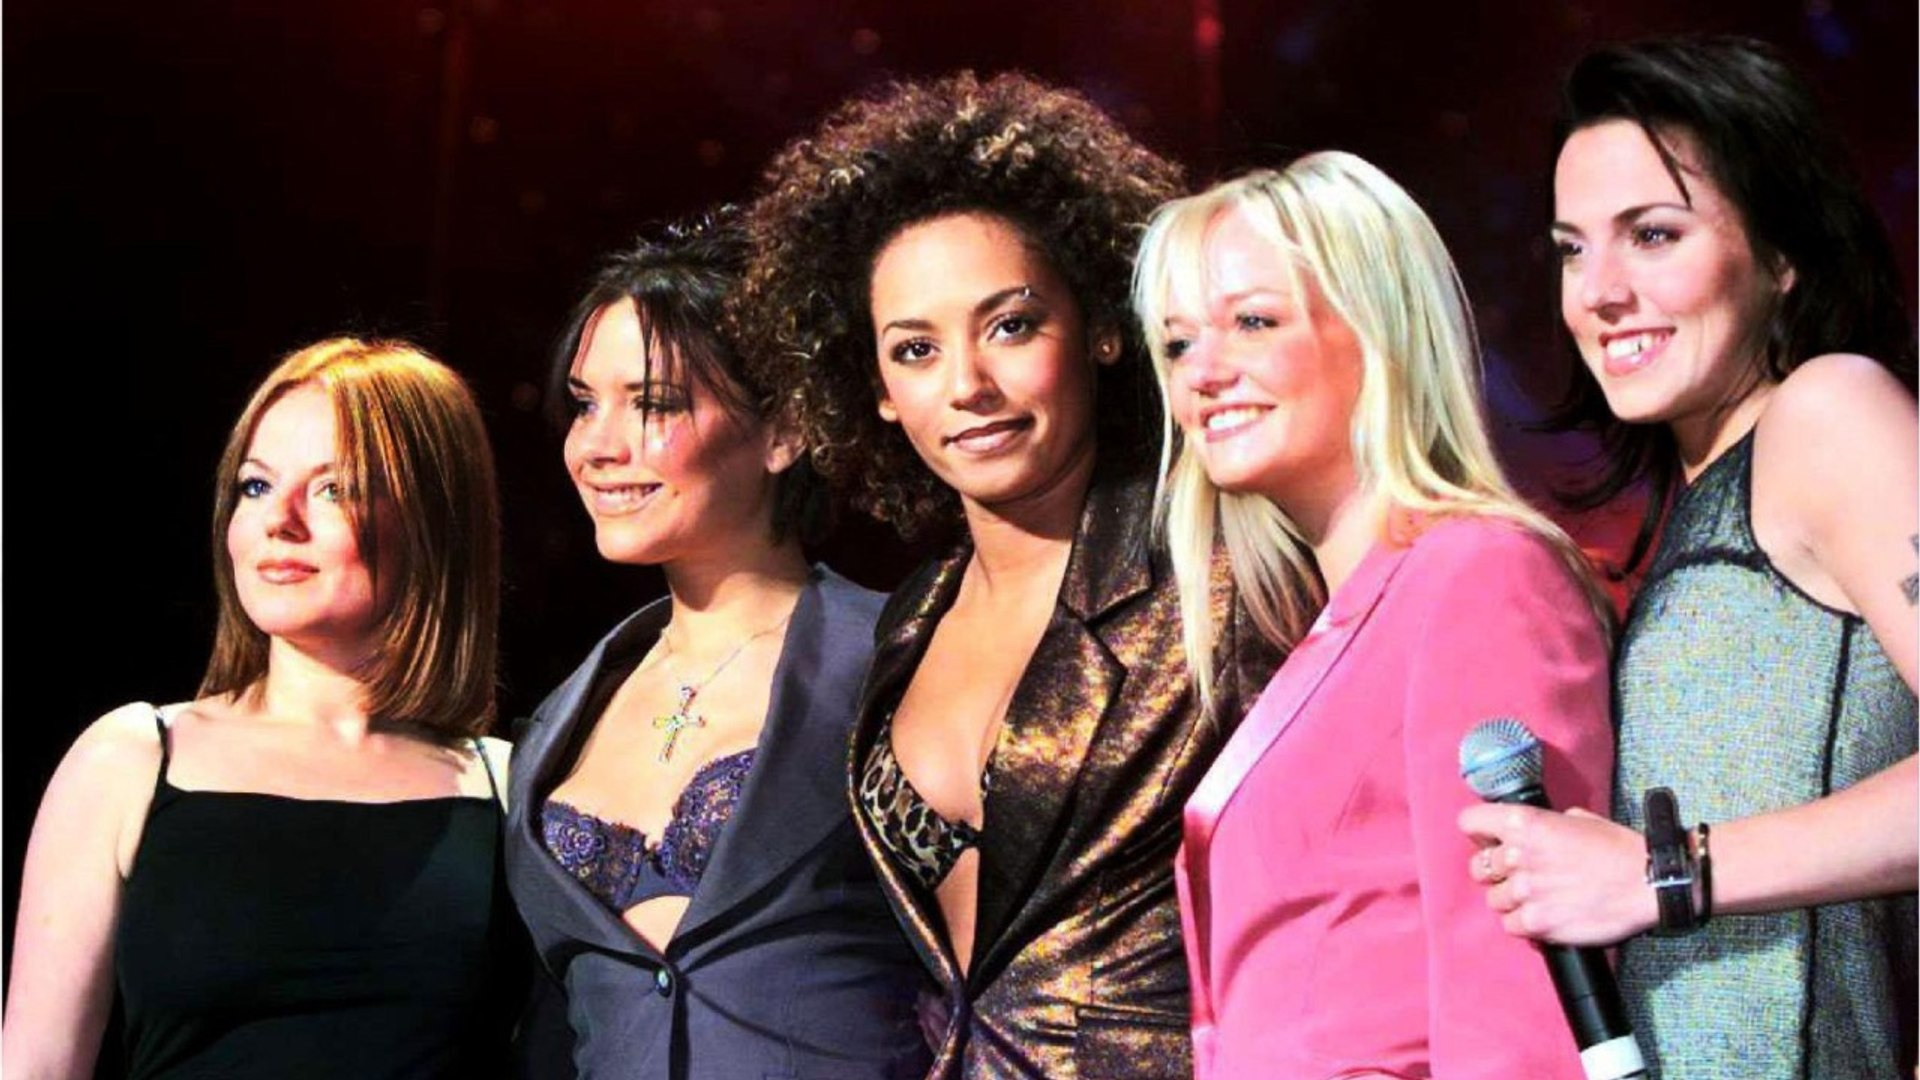 Will The Spice Girls Reunite?